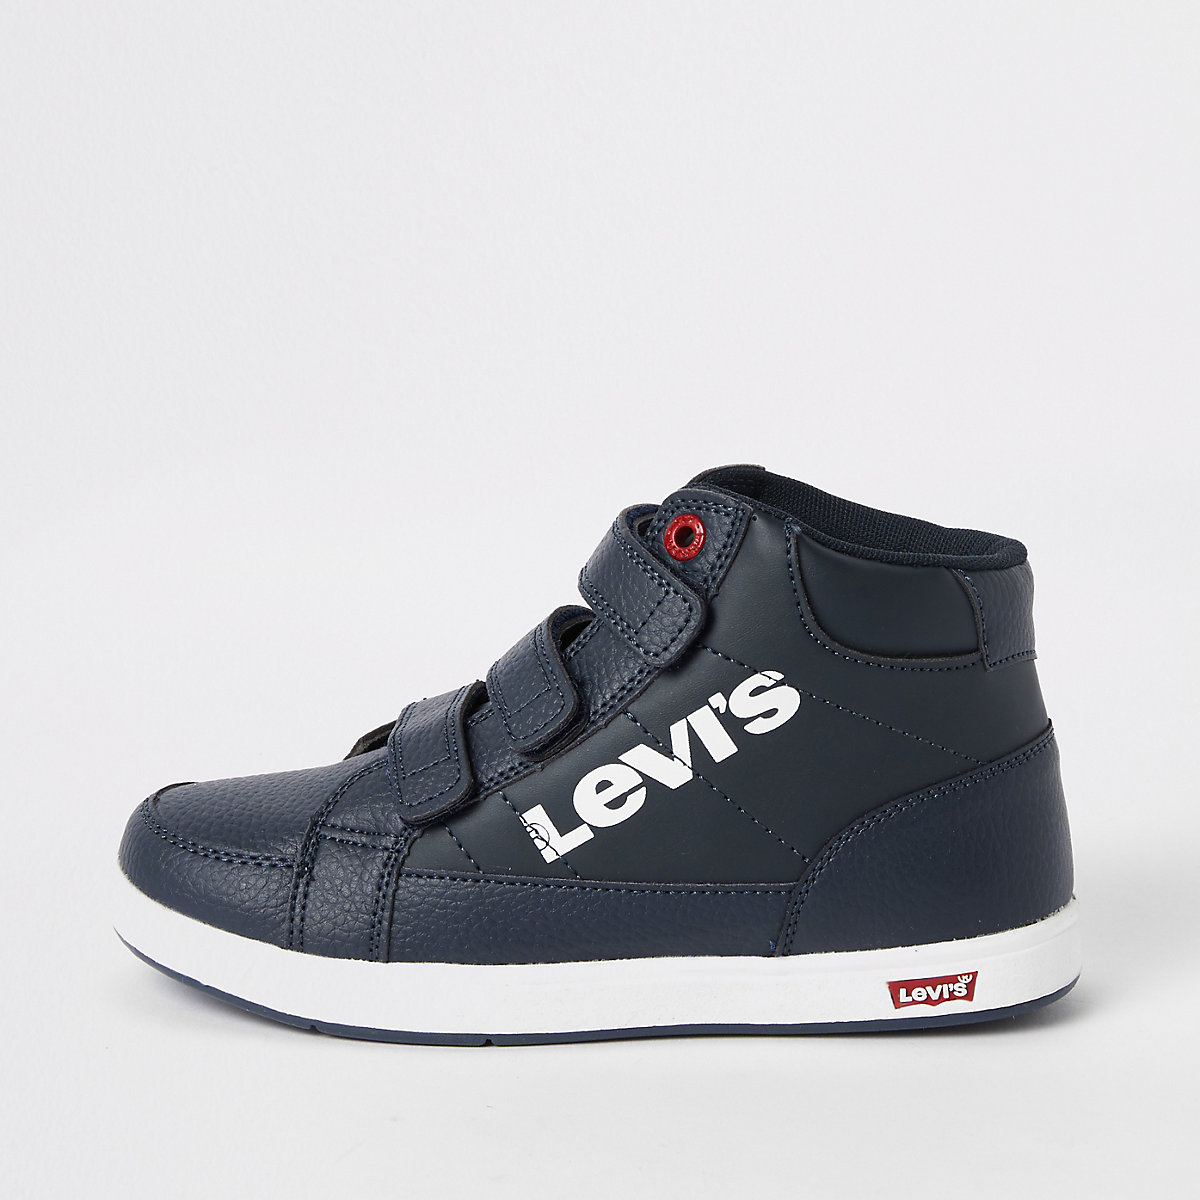 Boys navy Levi's velcro hi top trainers